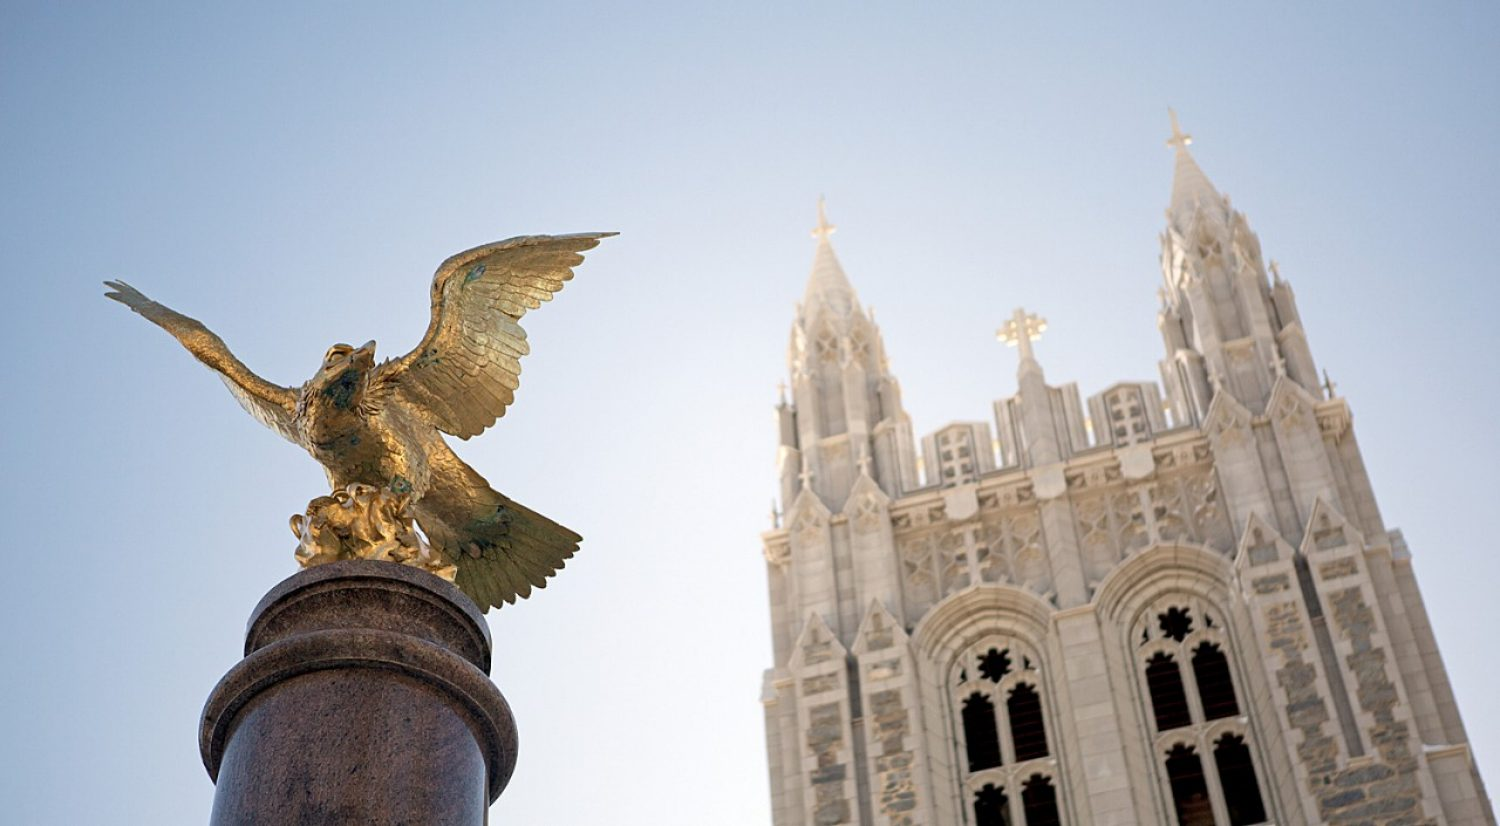 Gasson tower and Eagle statue